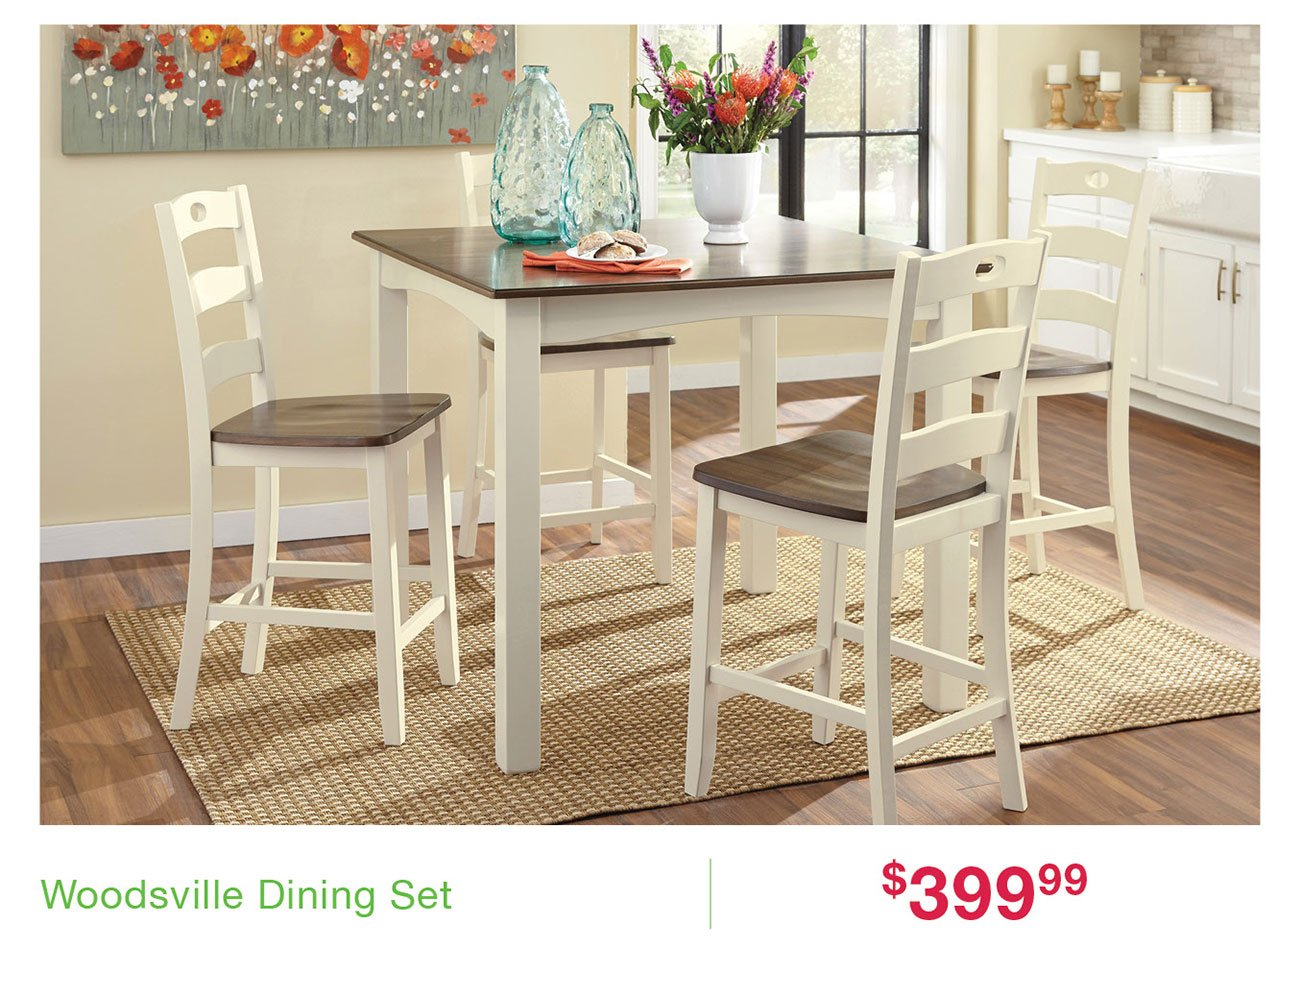 Woodsville-dining-set